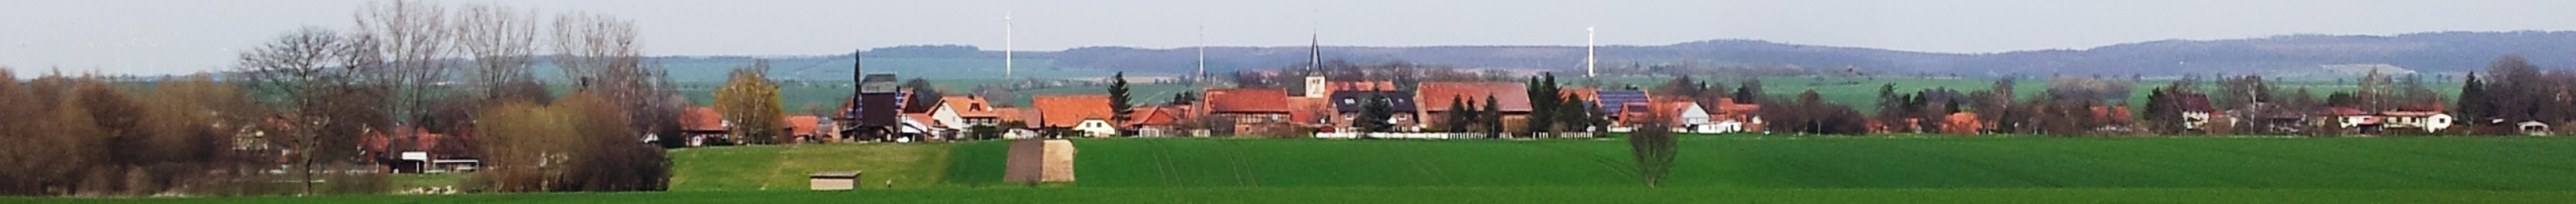 Panorama Danstedt